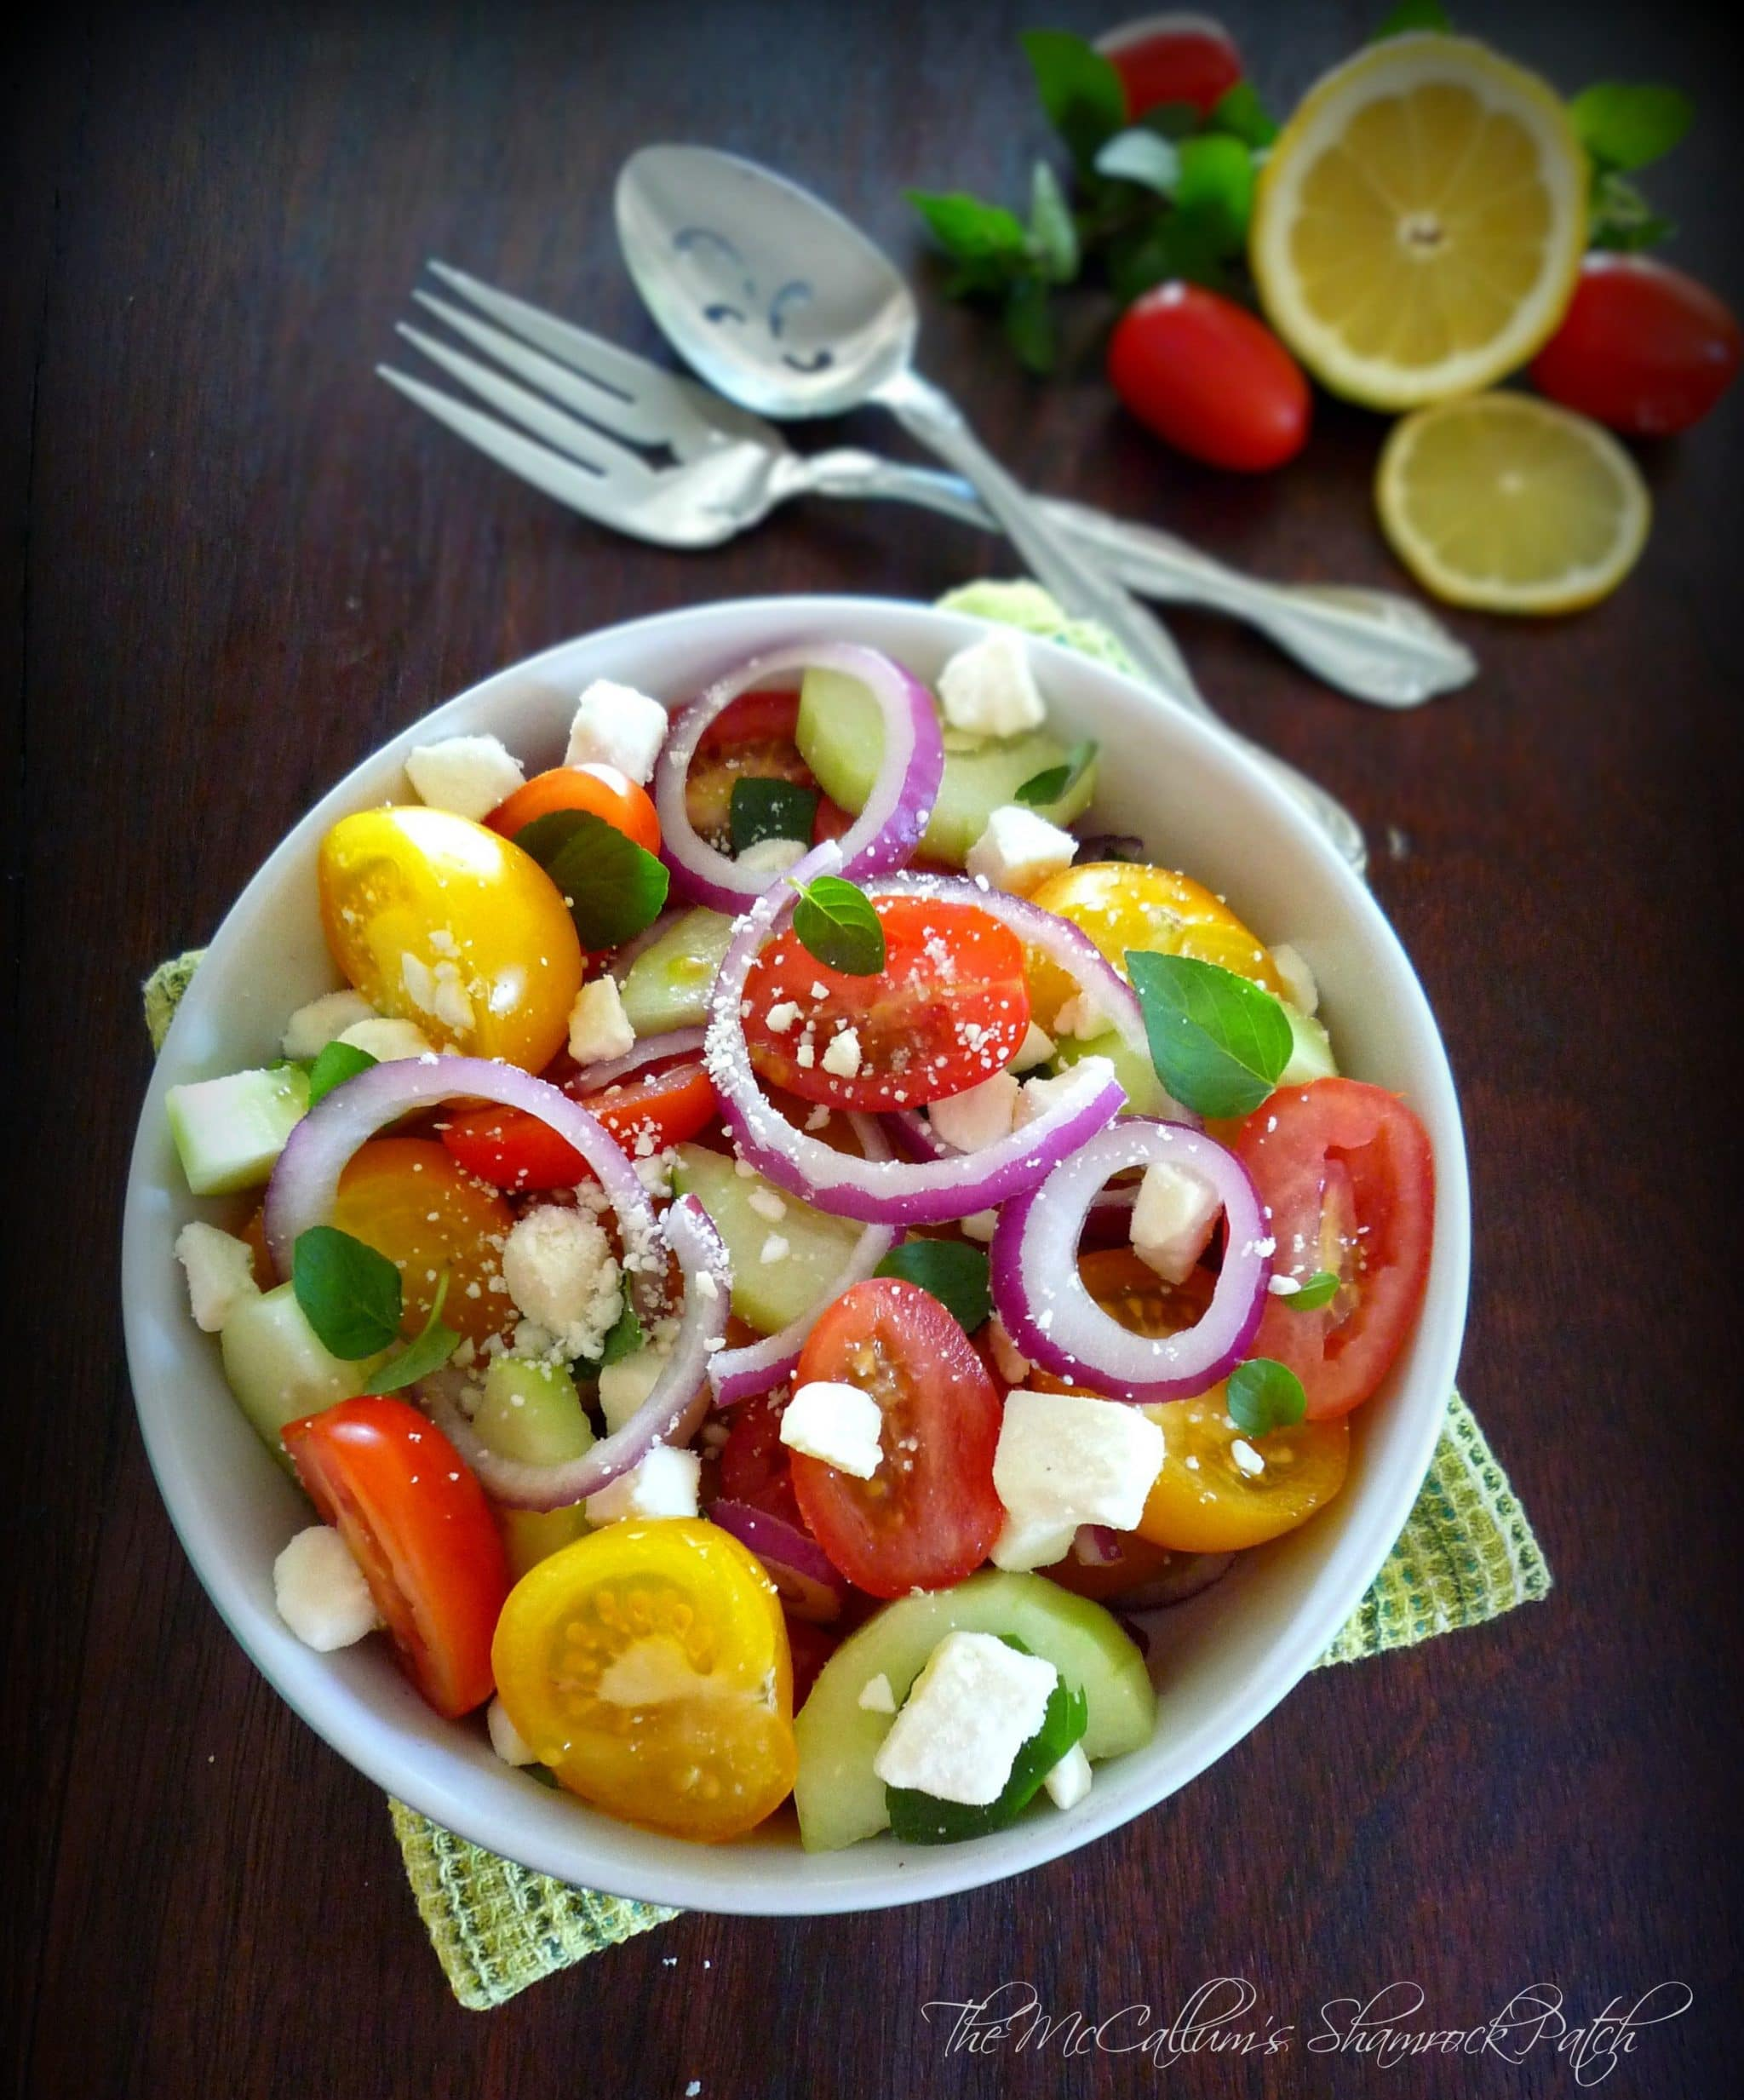 Tomato Feta & Mint Salad is a gorgeous yet simple salad to begin our lovely pre-spring here in sunny Florida combining juicy and delicious red grape tomatoes and lovely yellow cocktail tomatoes with crisp sliced cucumbers, red salad onions, Feta, and mint